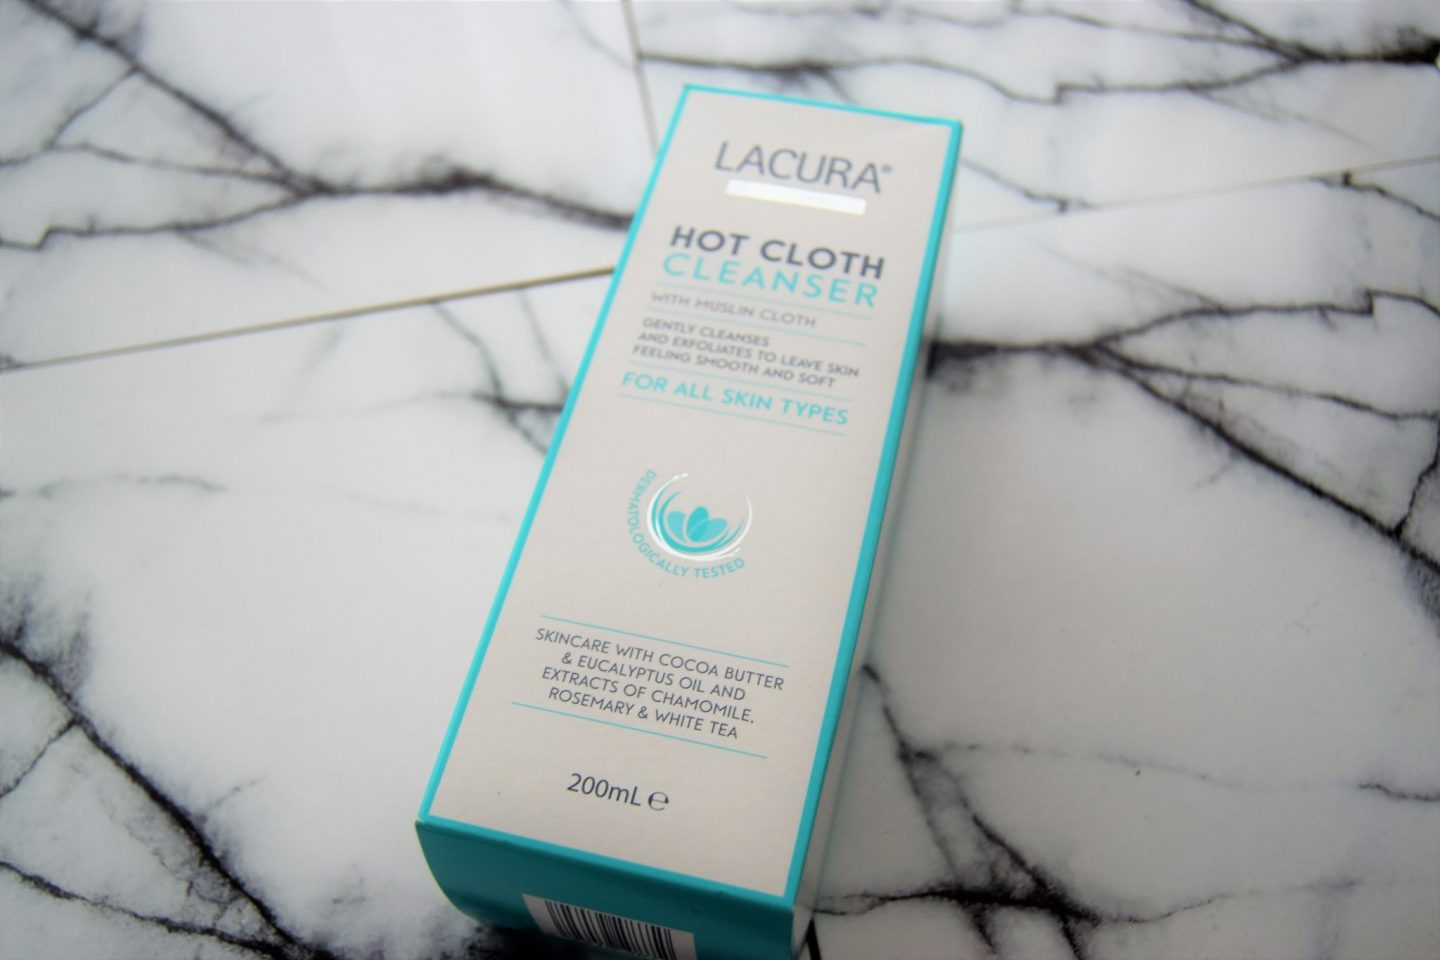 DSC 2506 1440x960 - Lacura: Hot Cloth Cleanser